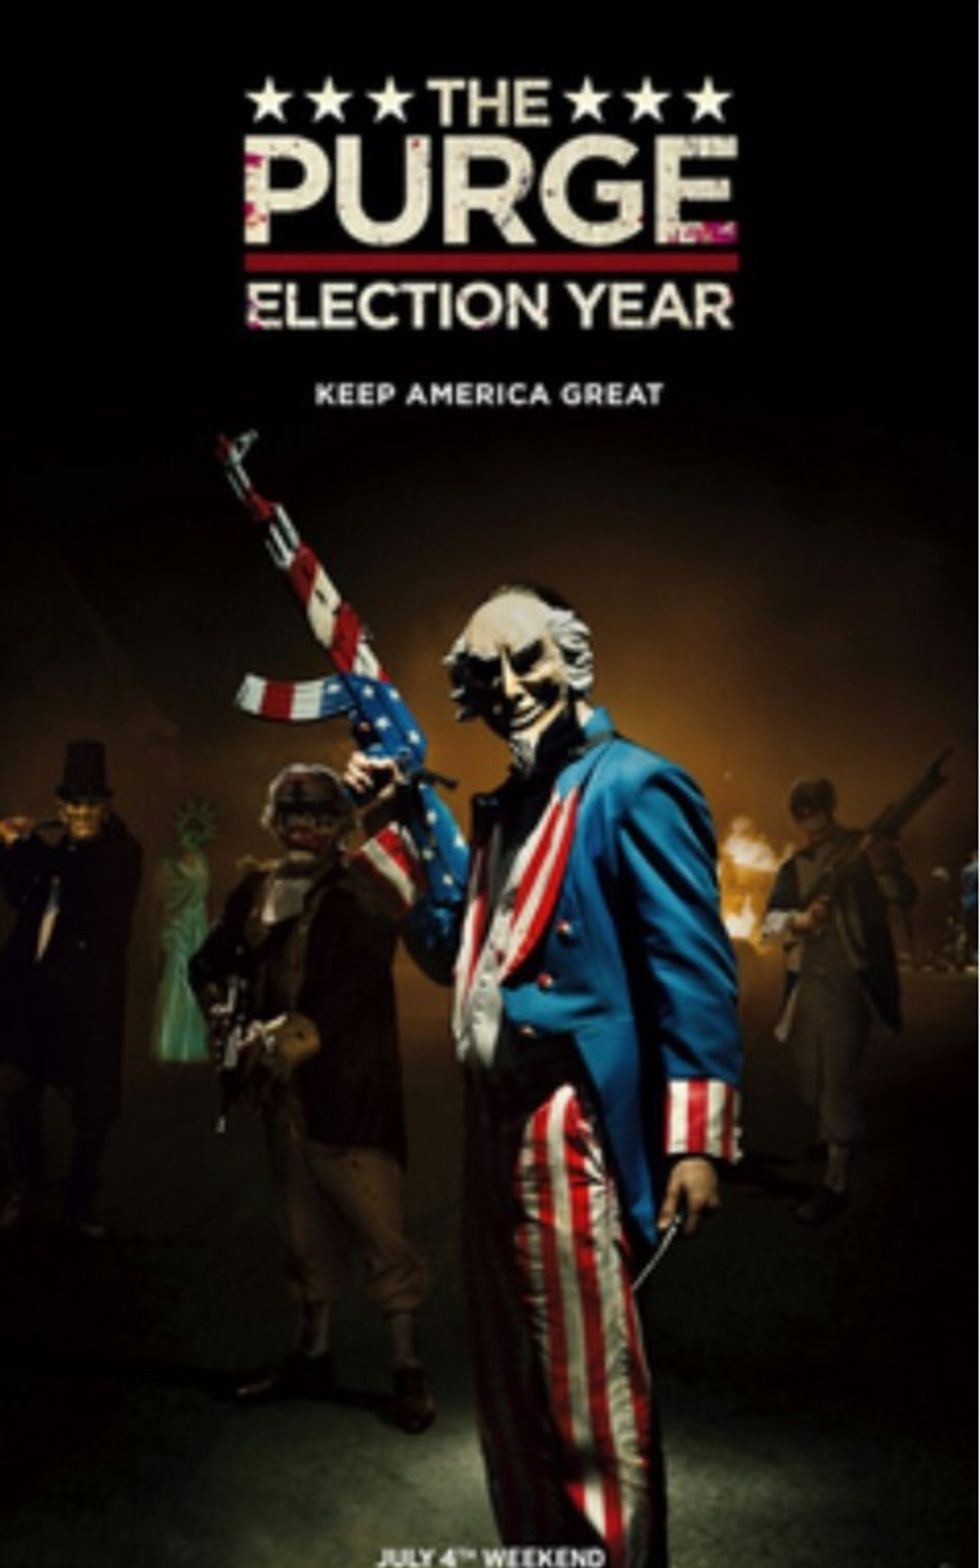 Donald Trump's New Slogan Is The Same One From The Dystopian Film The Purge: Election Year